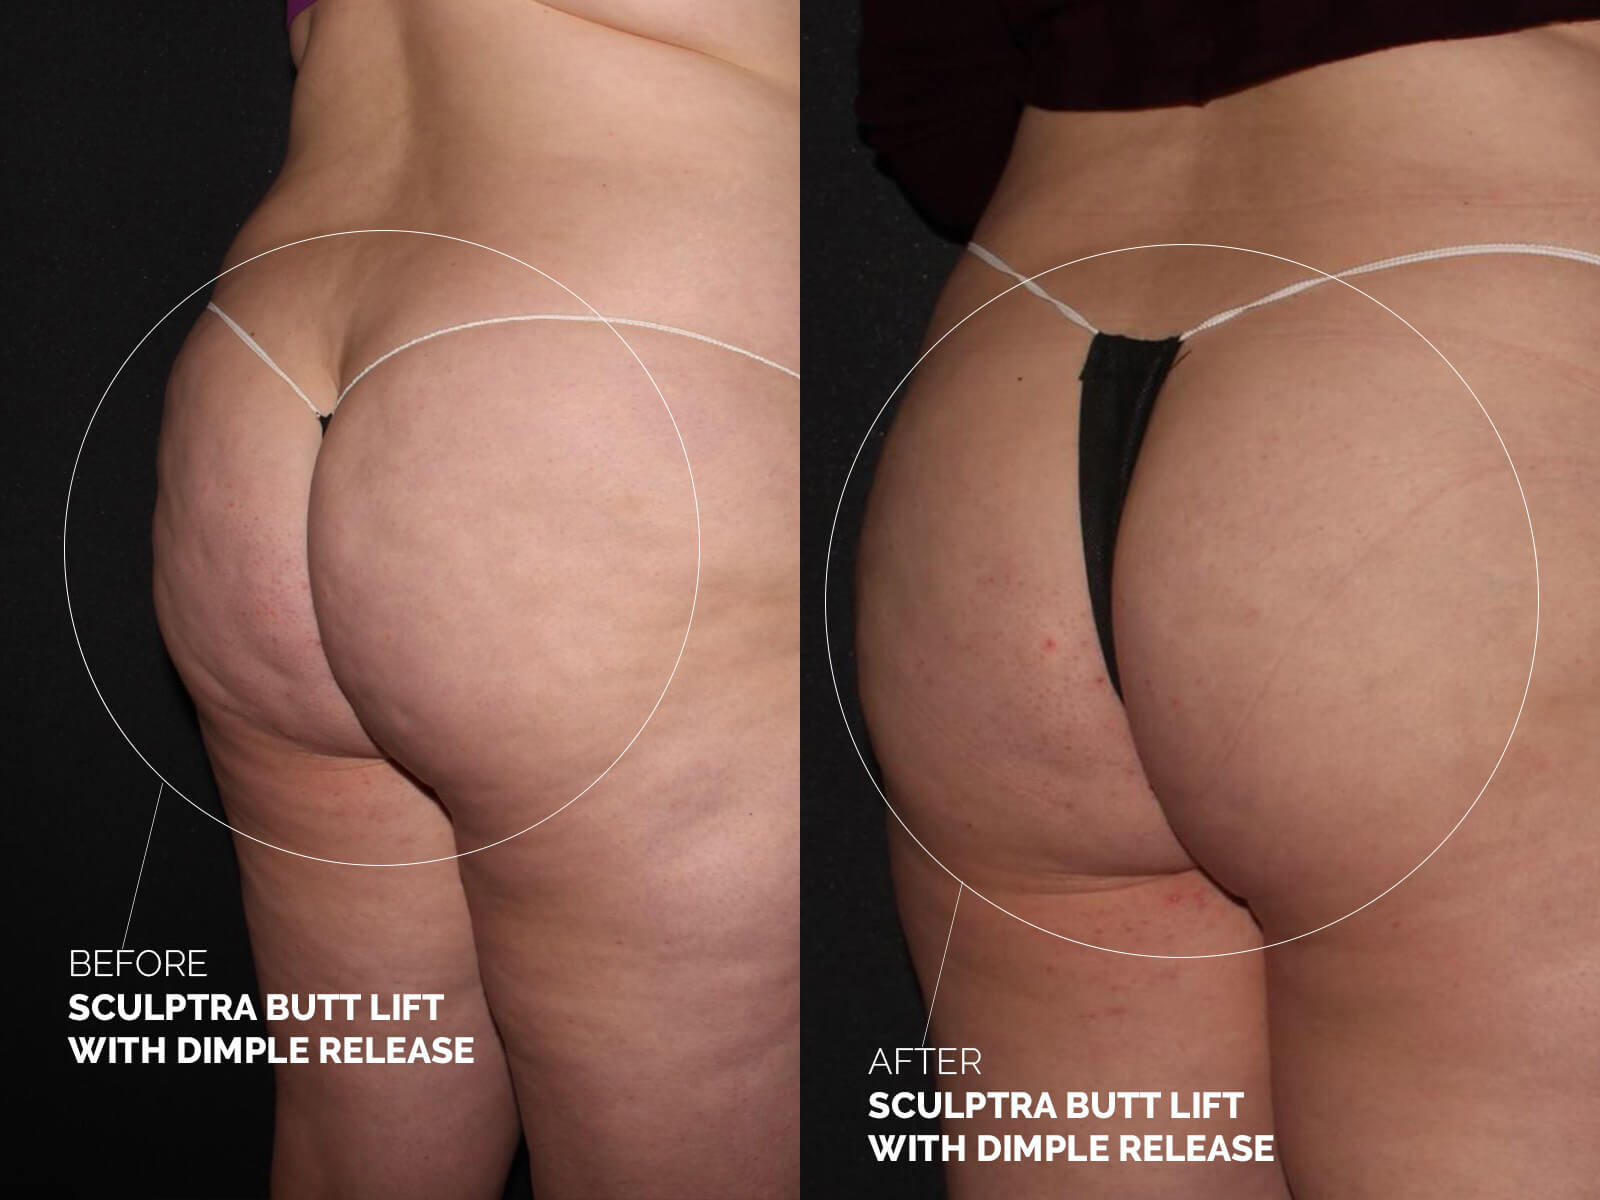 sculptra-butt-lift-dimple-release-before-after